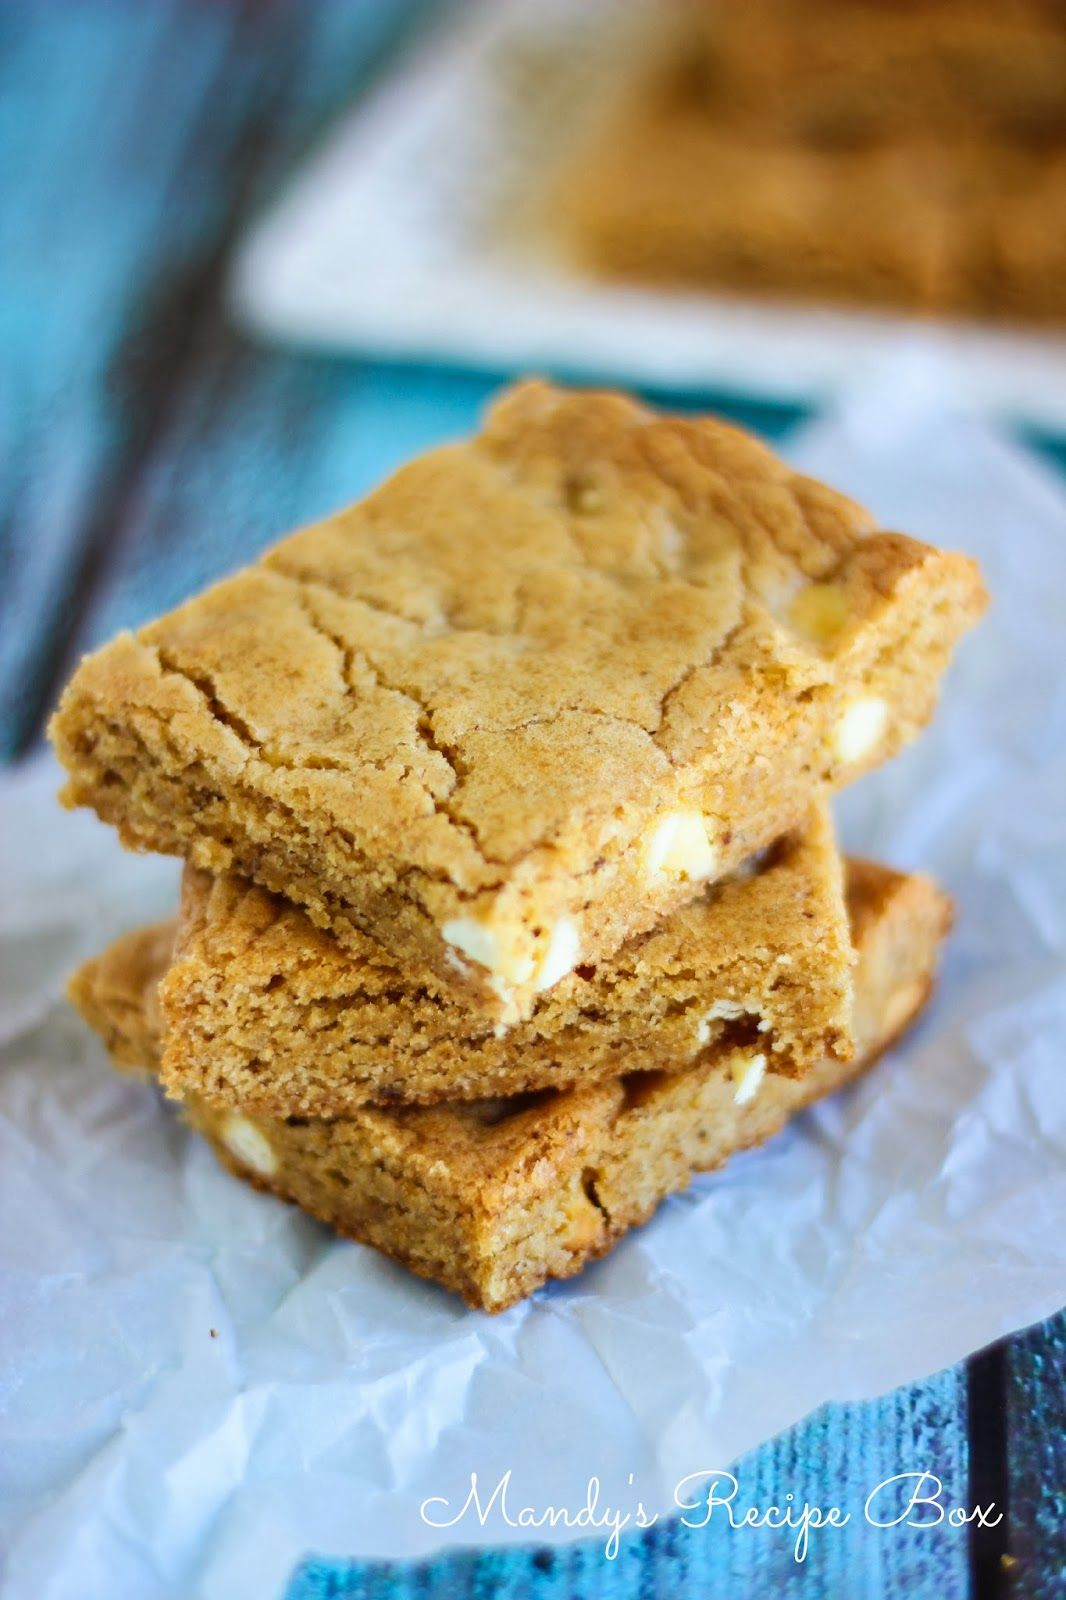 Mandy's Recipe Box: Browned Butter Blondies